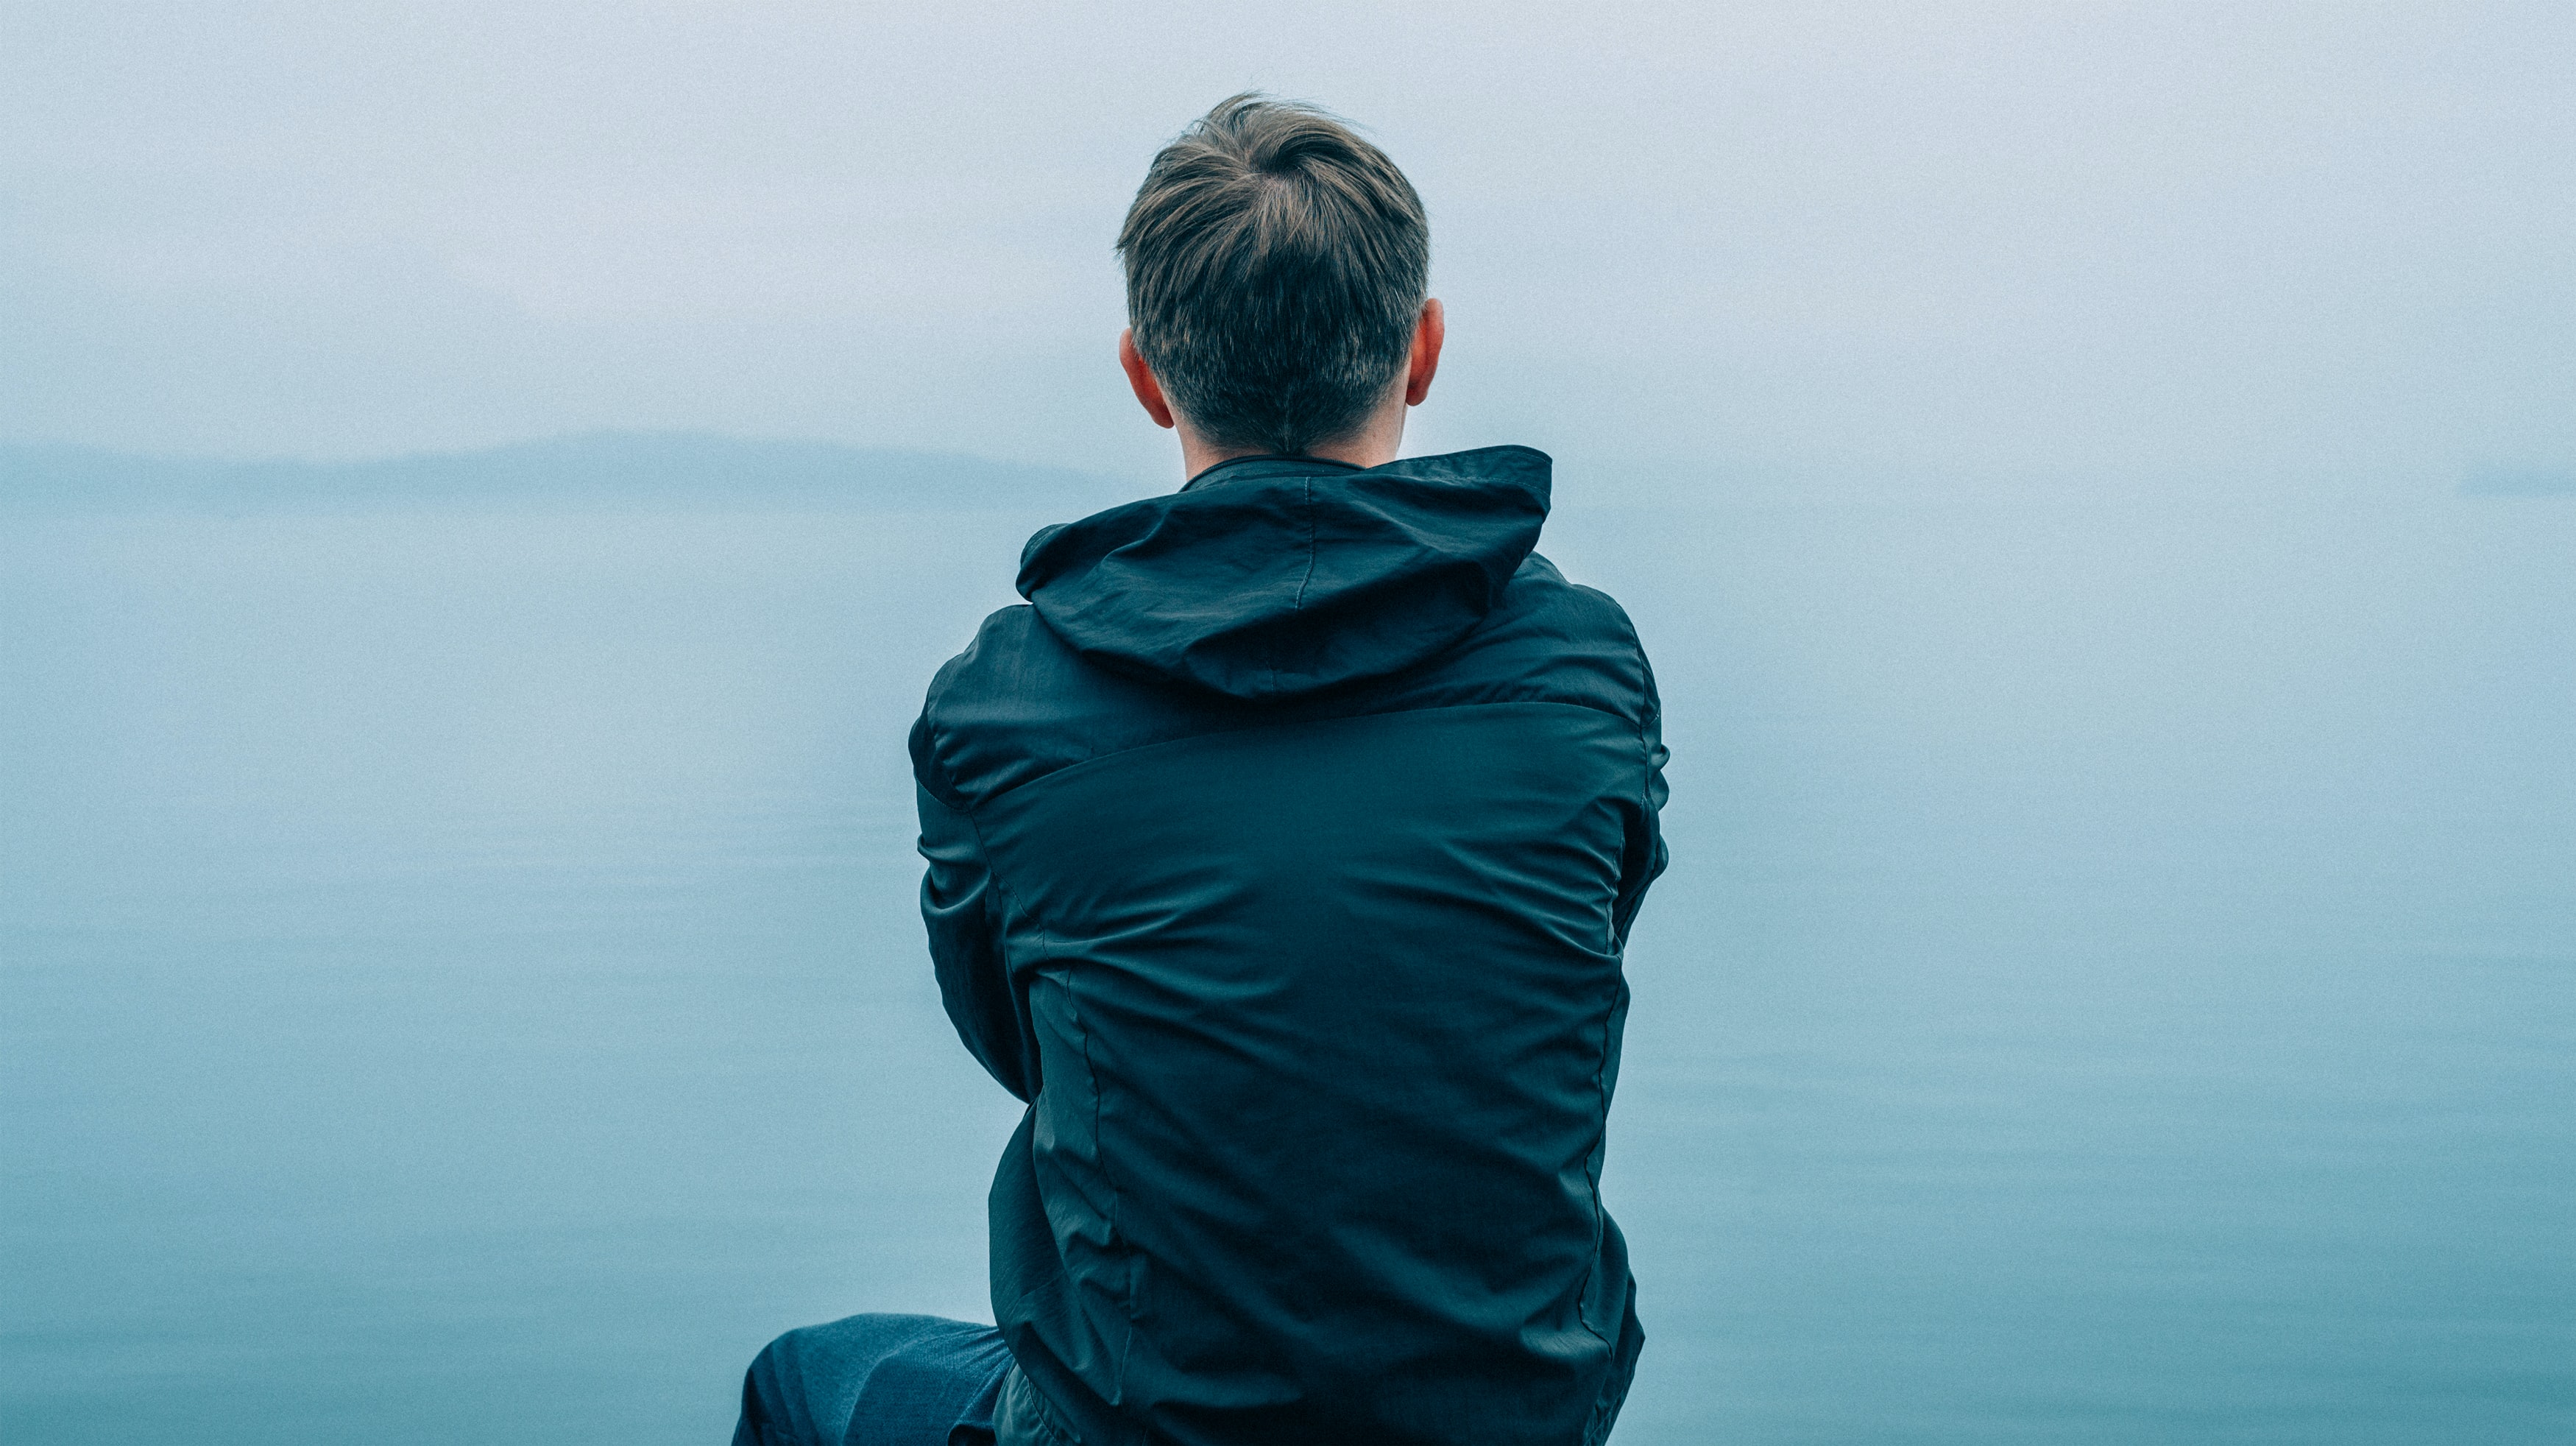 man in black hoodie sitting in front of ocean